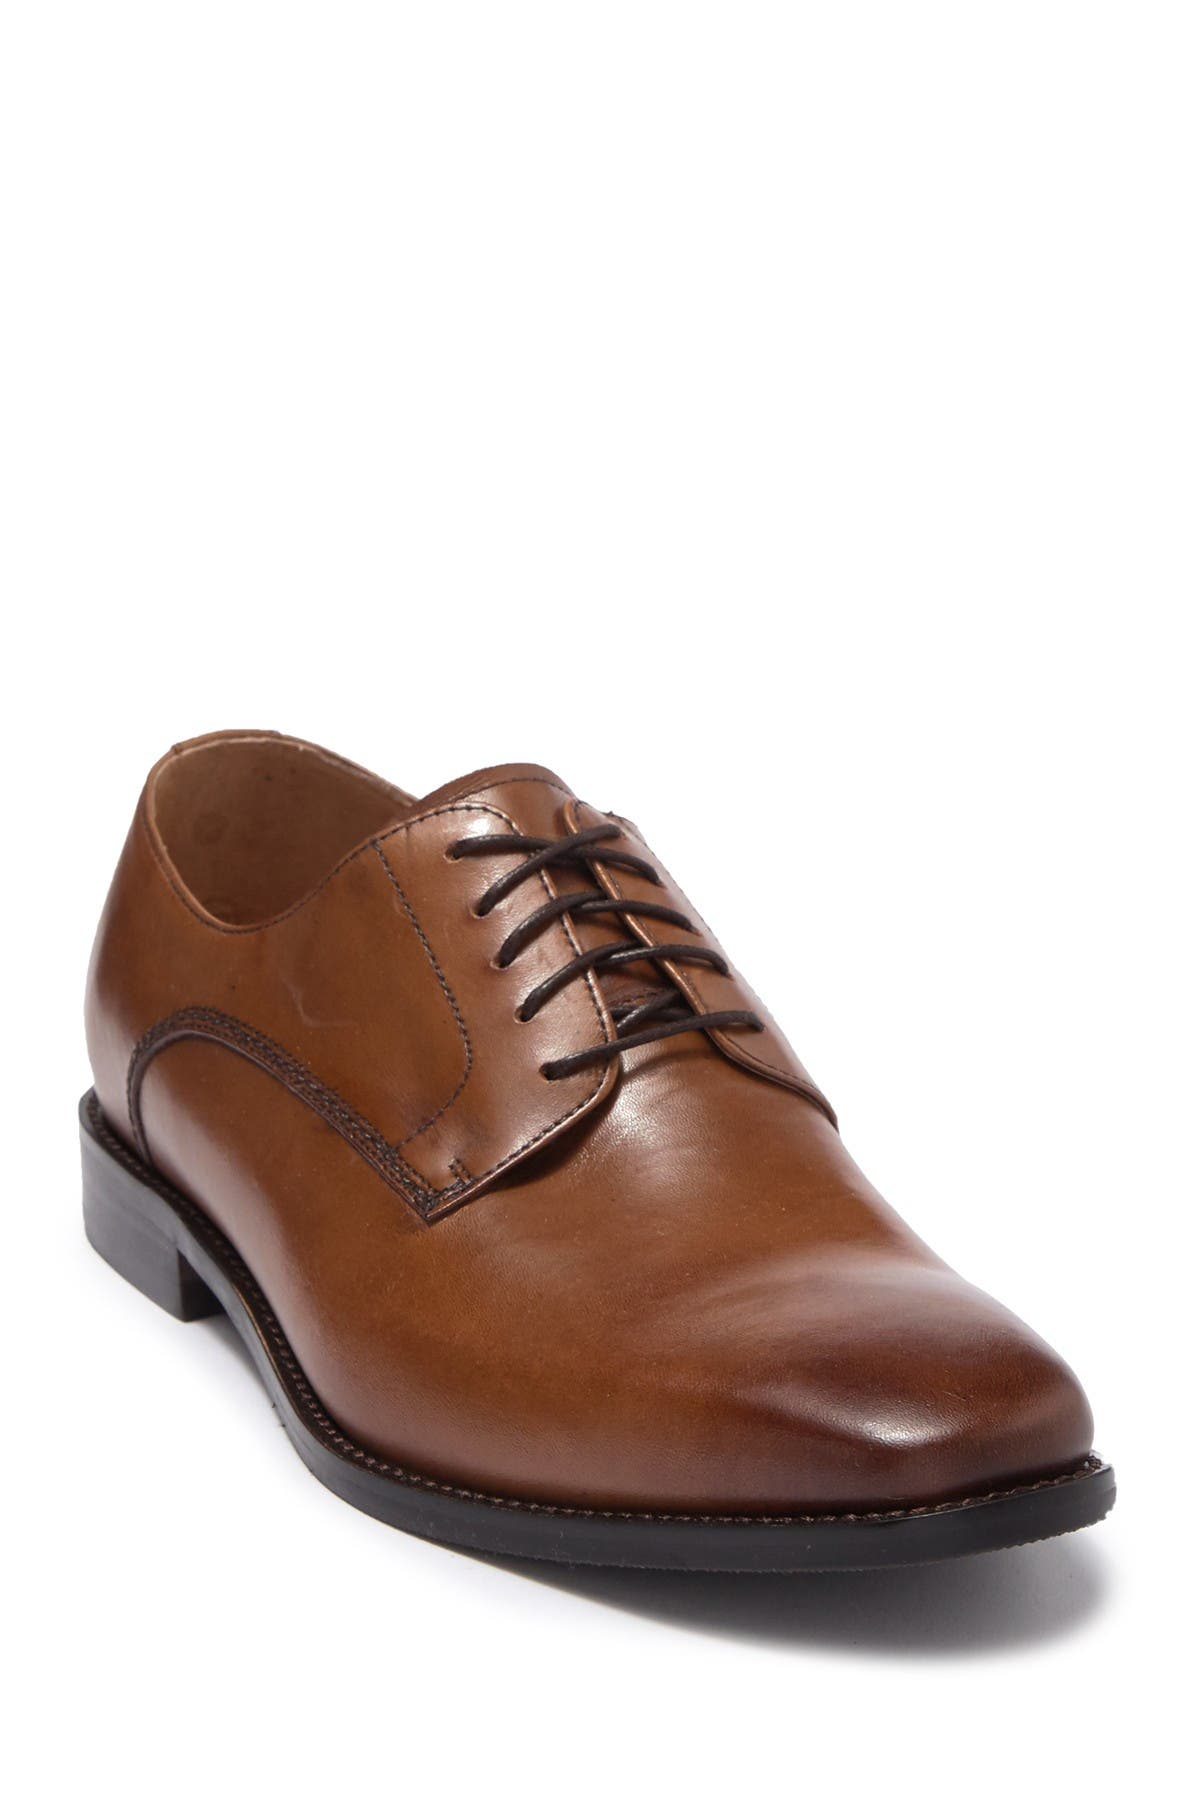 Image of Warfield & Grand Palmer Leather Derby